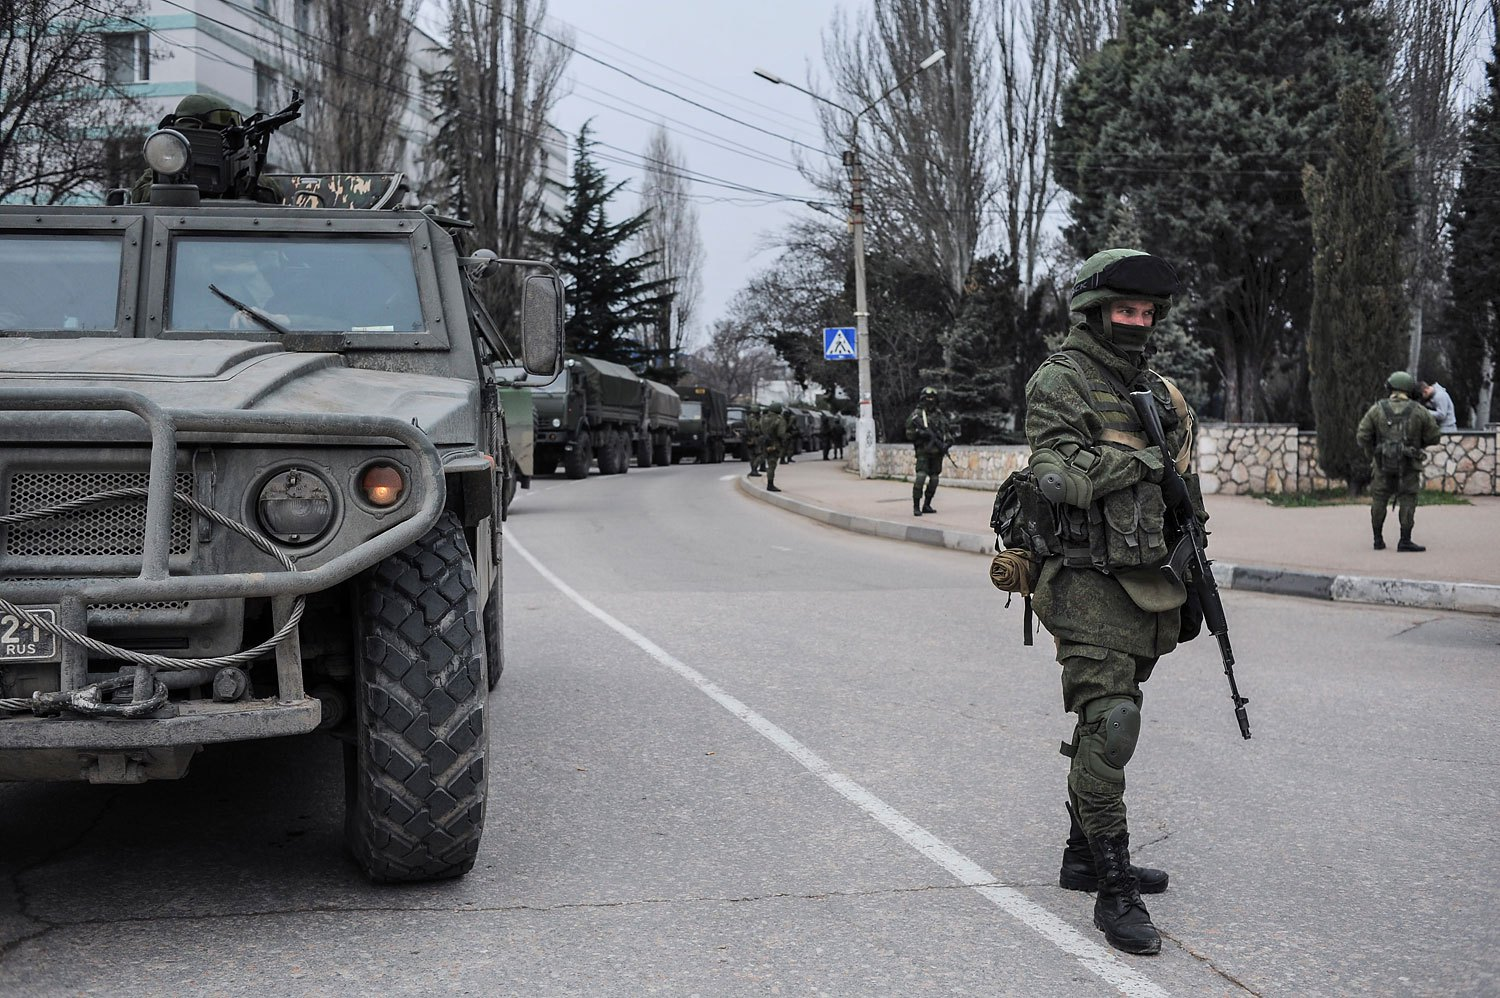 Troops in unmarked uniforms stand guard in Balaklava on the outskirts of Sevastopol, Ukraine, Saturday, March 1, 2014.